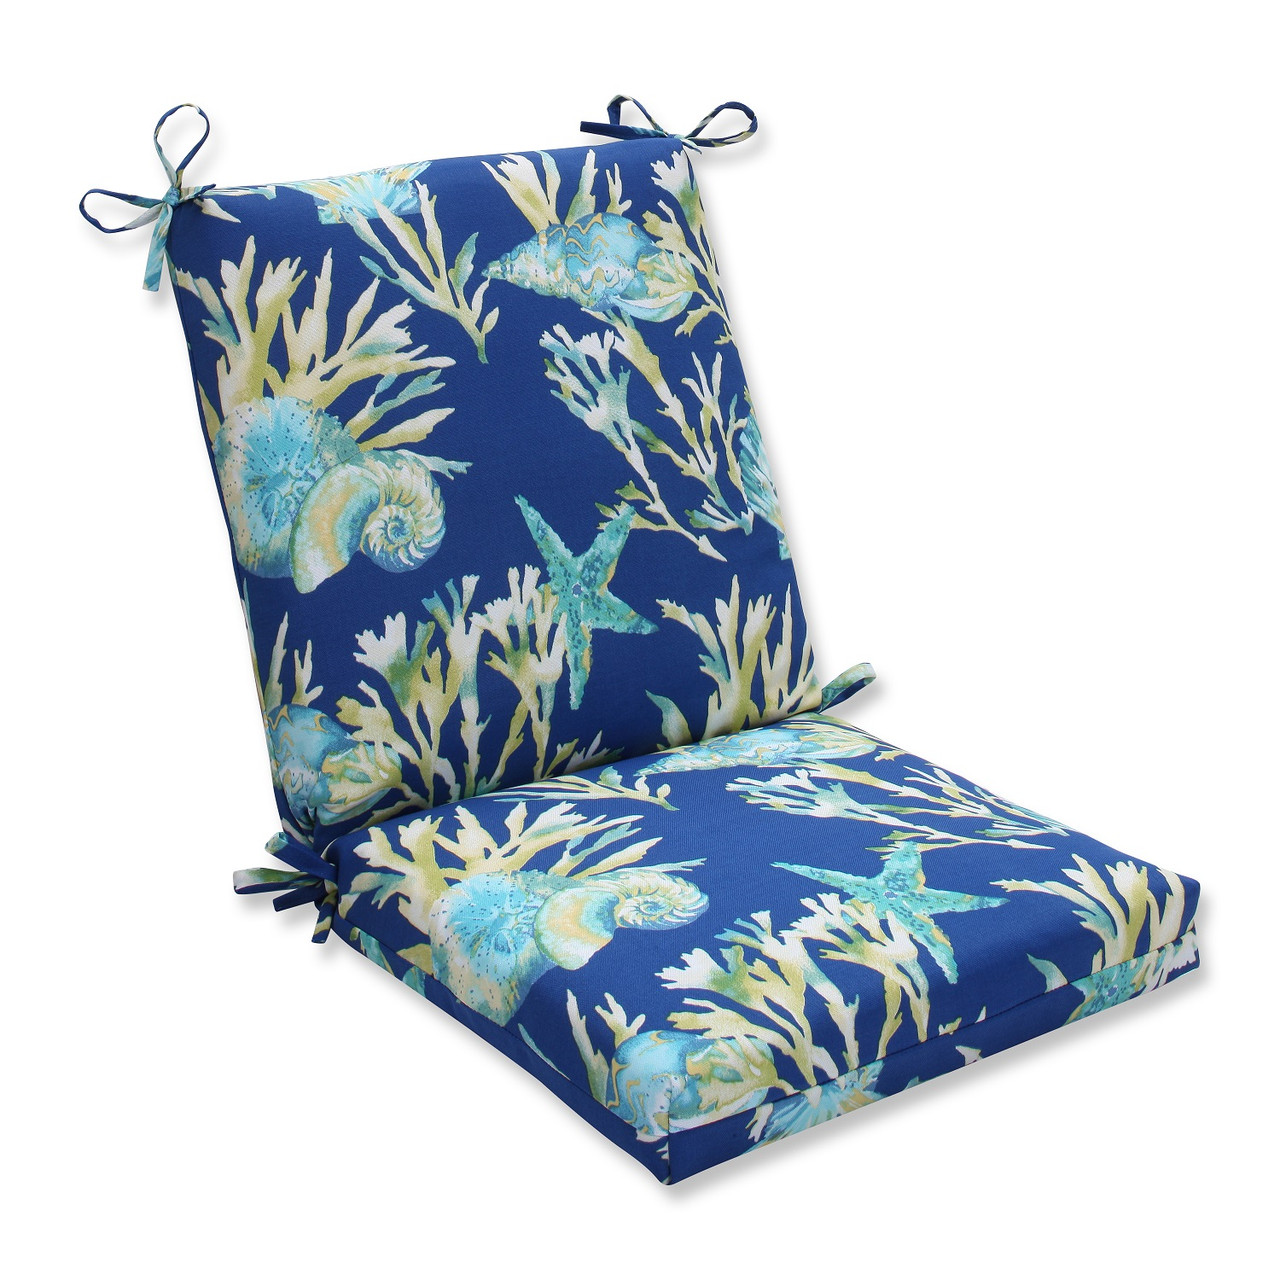 wicker chair cushions with ties balanced active sitting 40 5 blue green tropical island outdoor patio cushion and 32591876